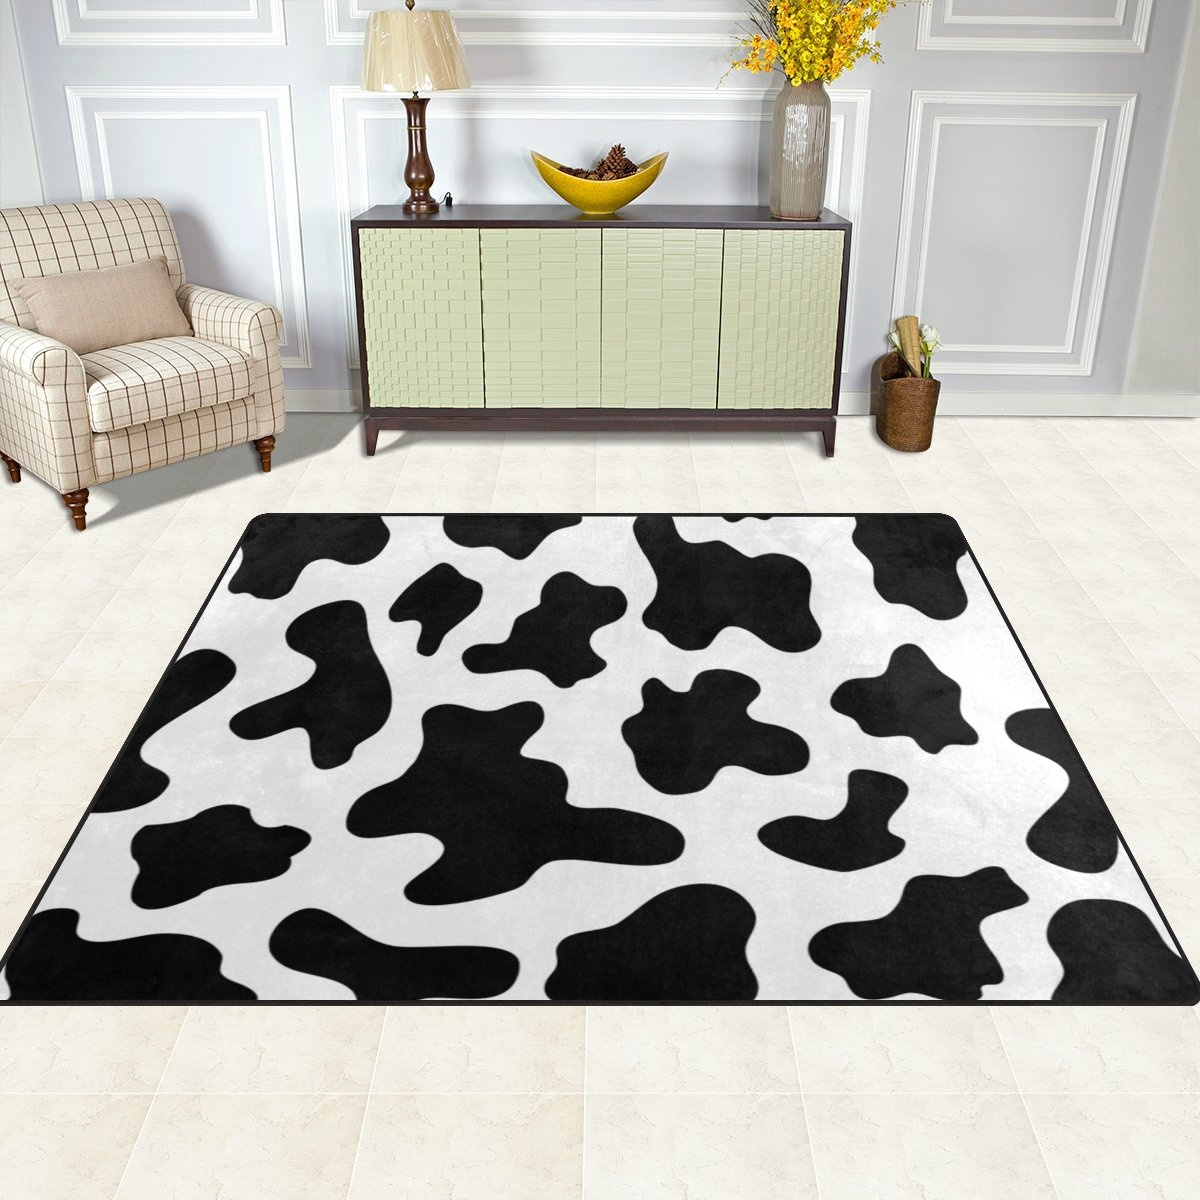 My Little Nest Black and White Cow Spot Kids Cartoon Area Rug 4'10'' x 6'8'' For Bedroom Dining Room Living Room Floor Mat Lightweight Carpet, Unique Anti Skid Indoor Outdoor Decor Soft Rug Carpets by My Little Nest (Image #3)